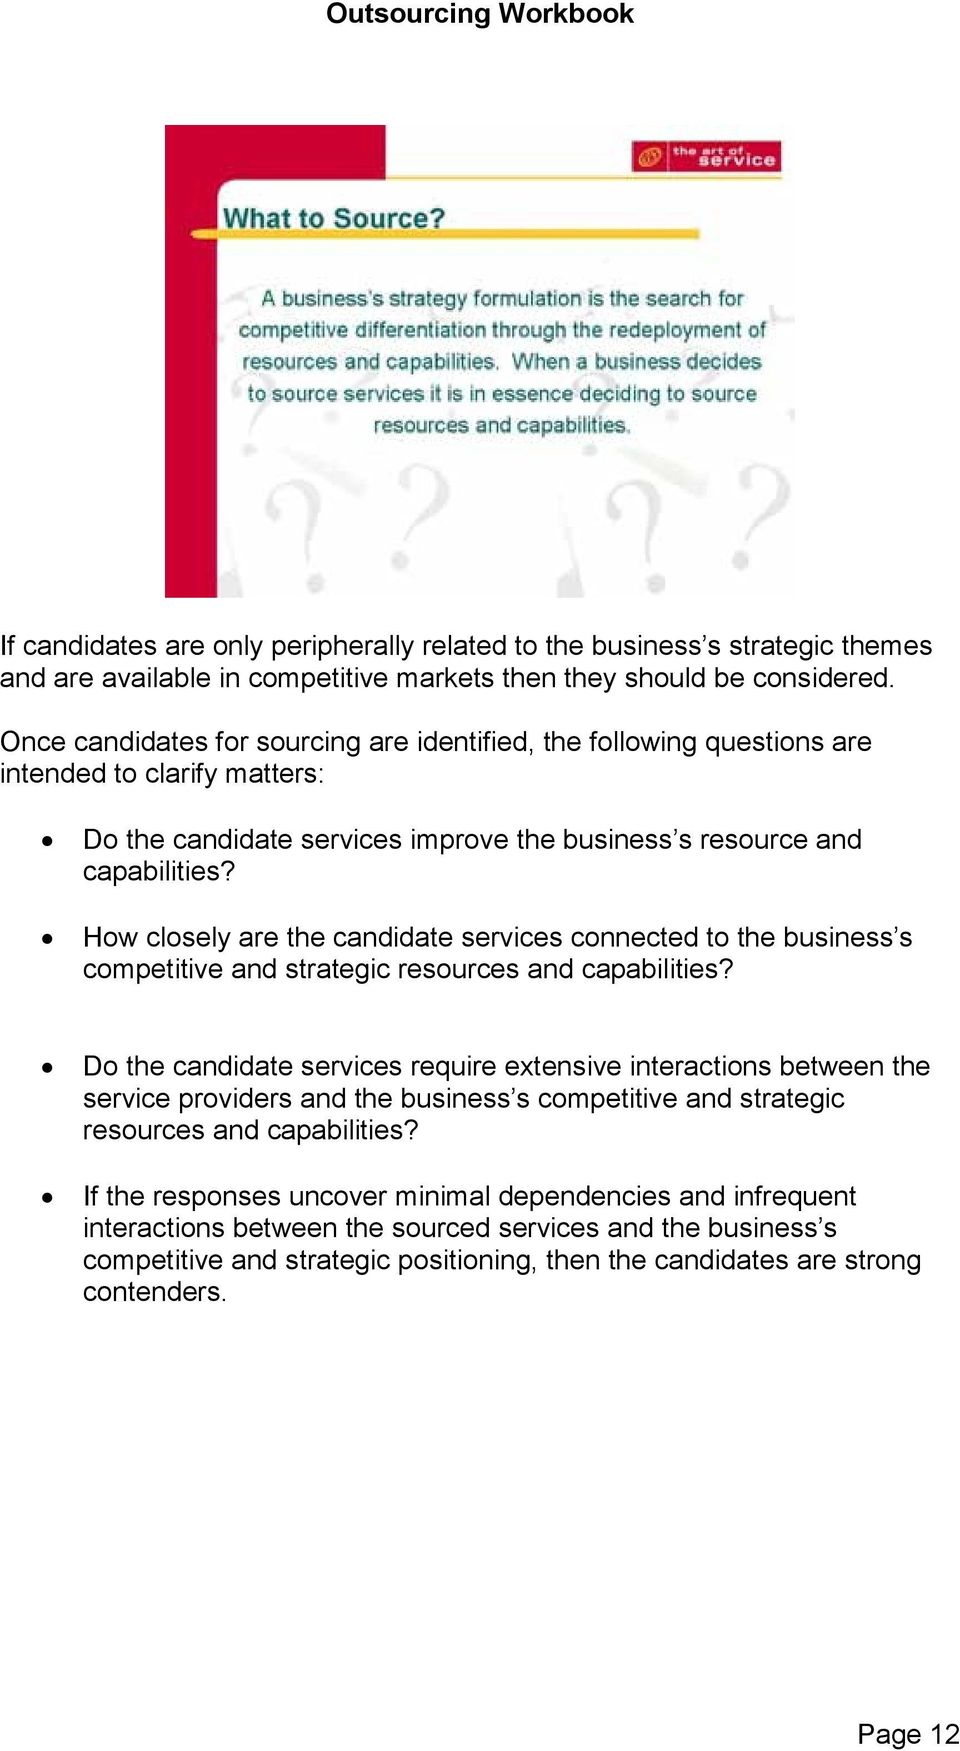 How closely are the candidate services connected to the business s competitive and strategic resources and capabilities?